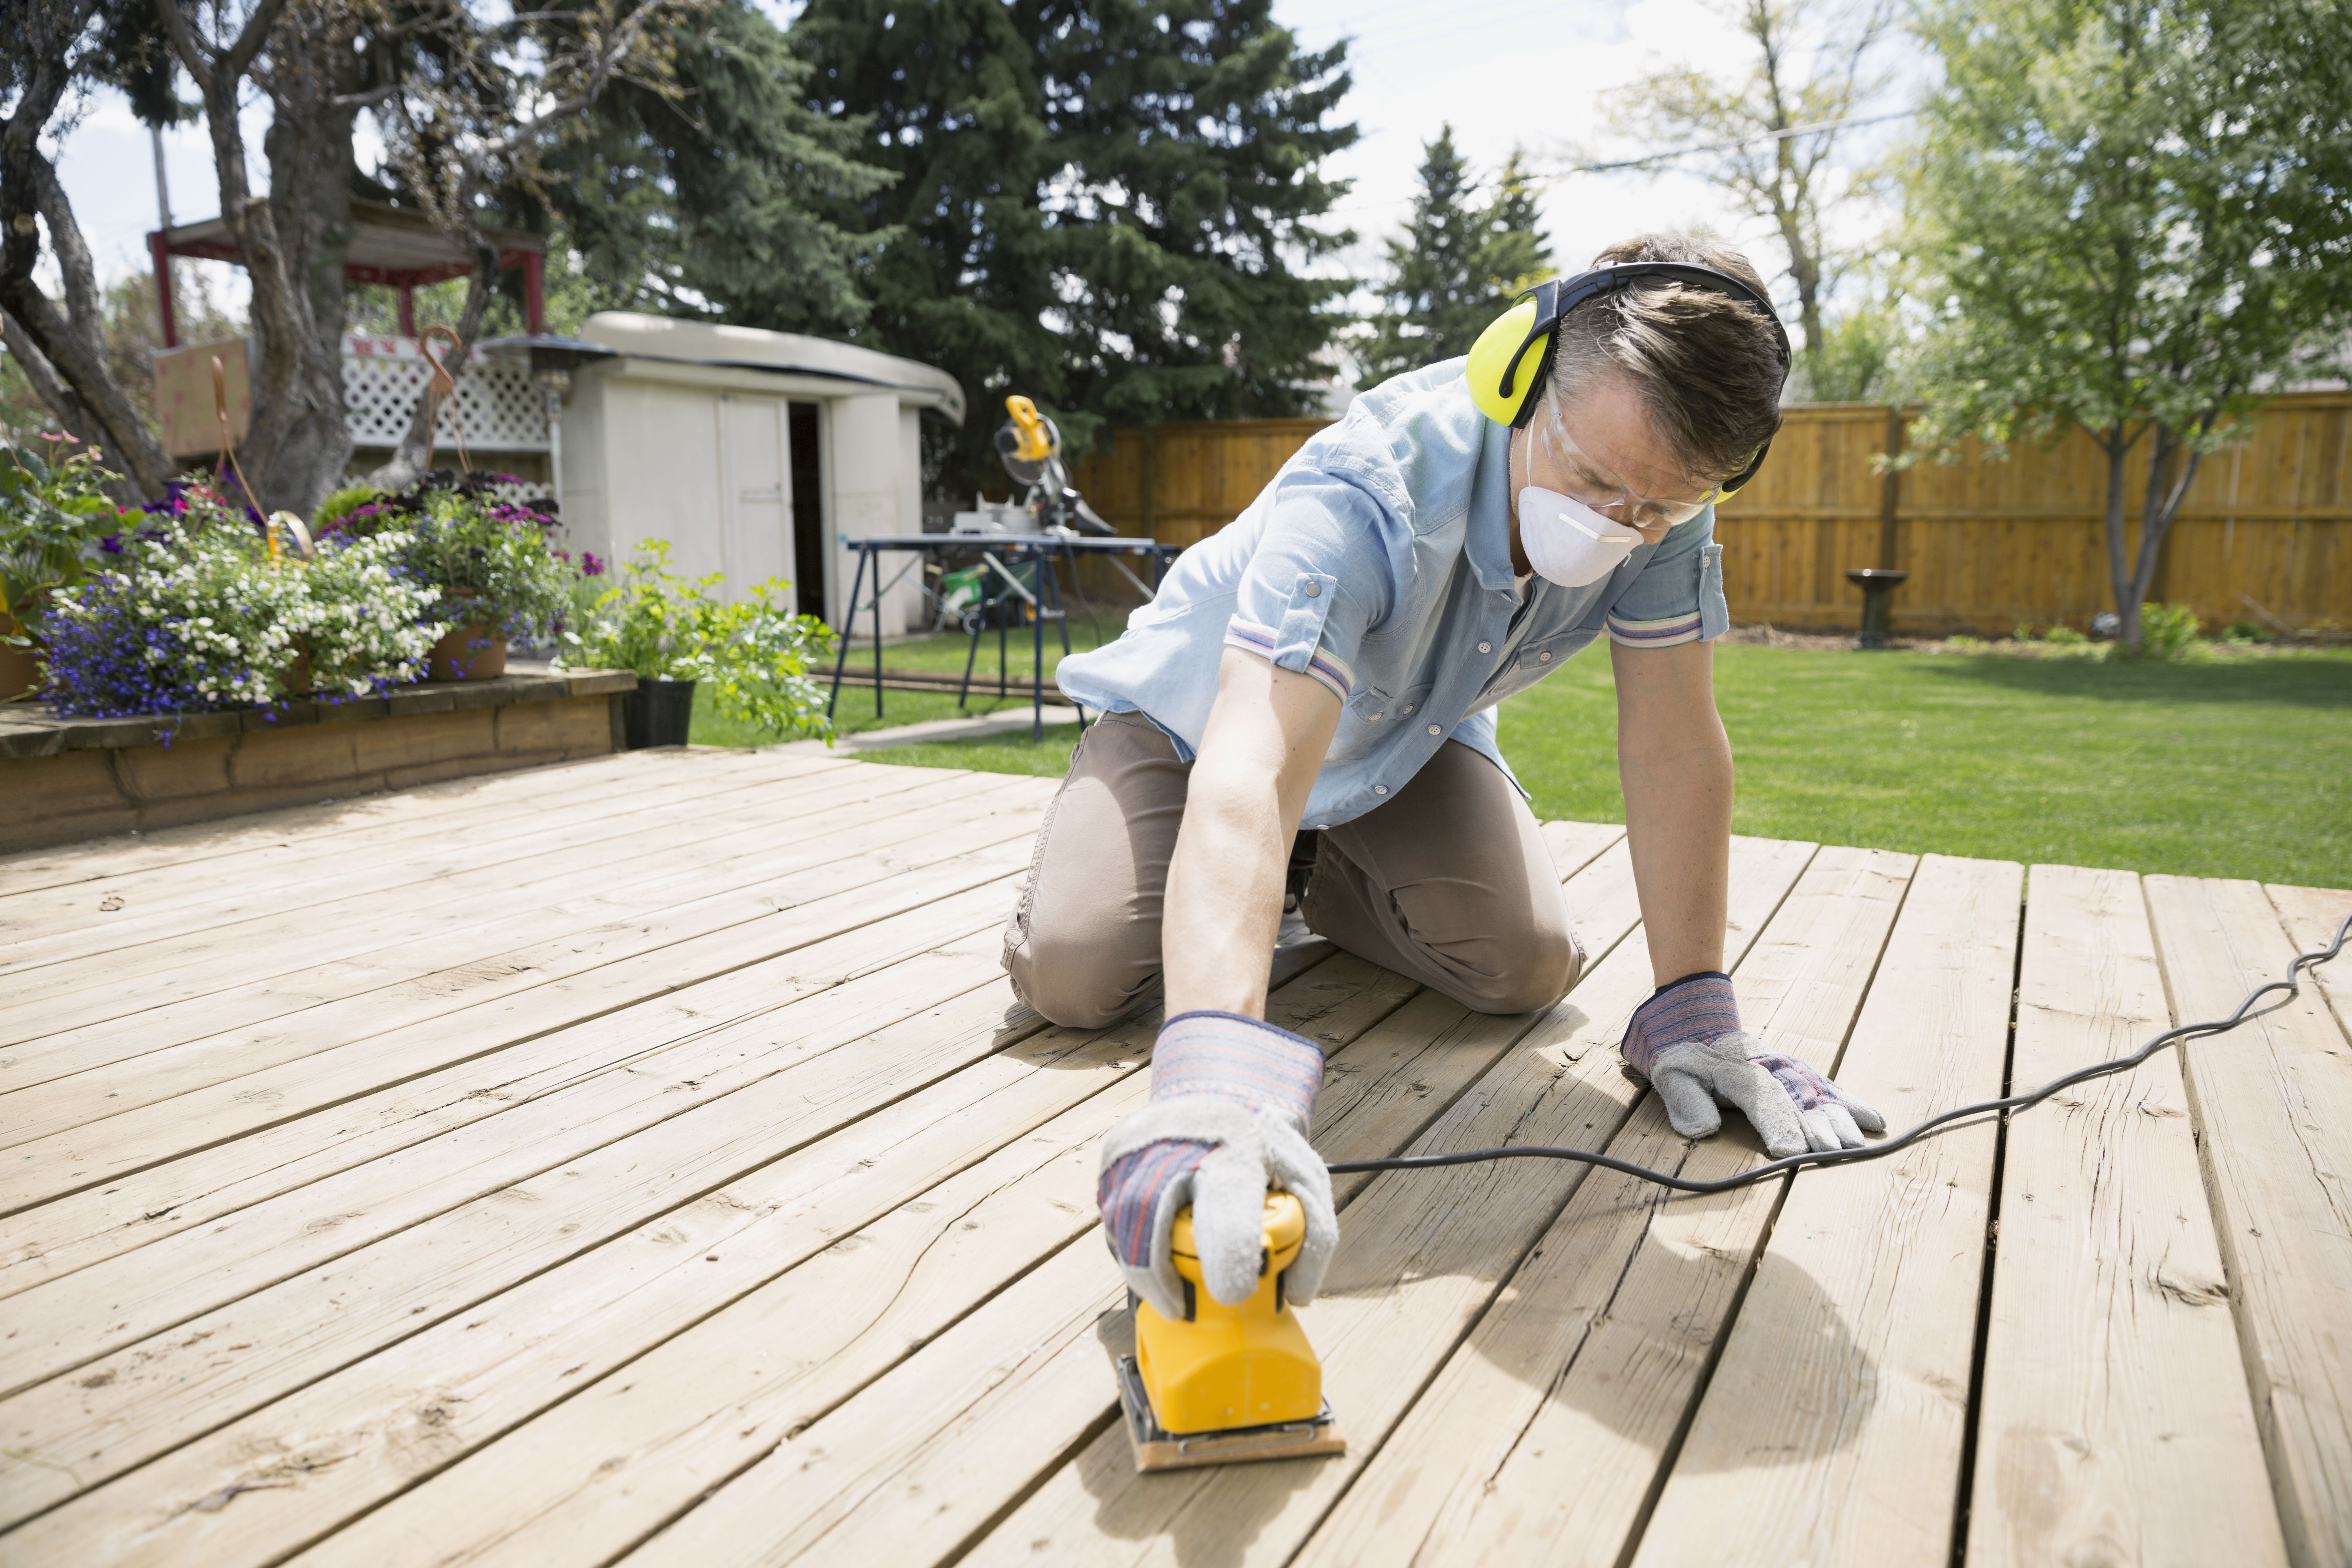 refinish hardwood floors or paint first of refinishing a wood deck an overview for man sanding backyard deck 500817135 5810fe043df78c2c7315c92b